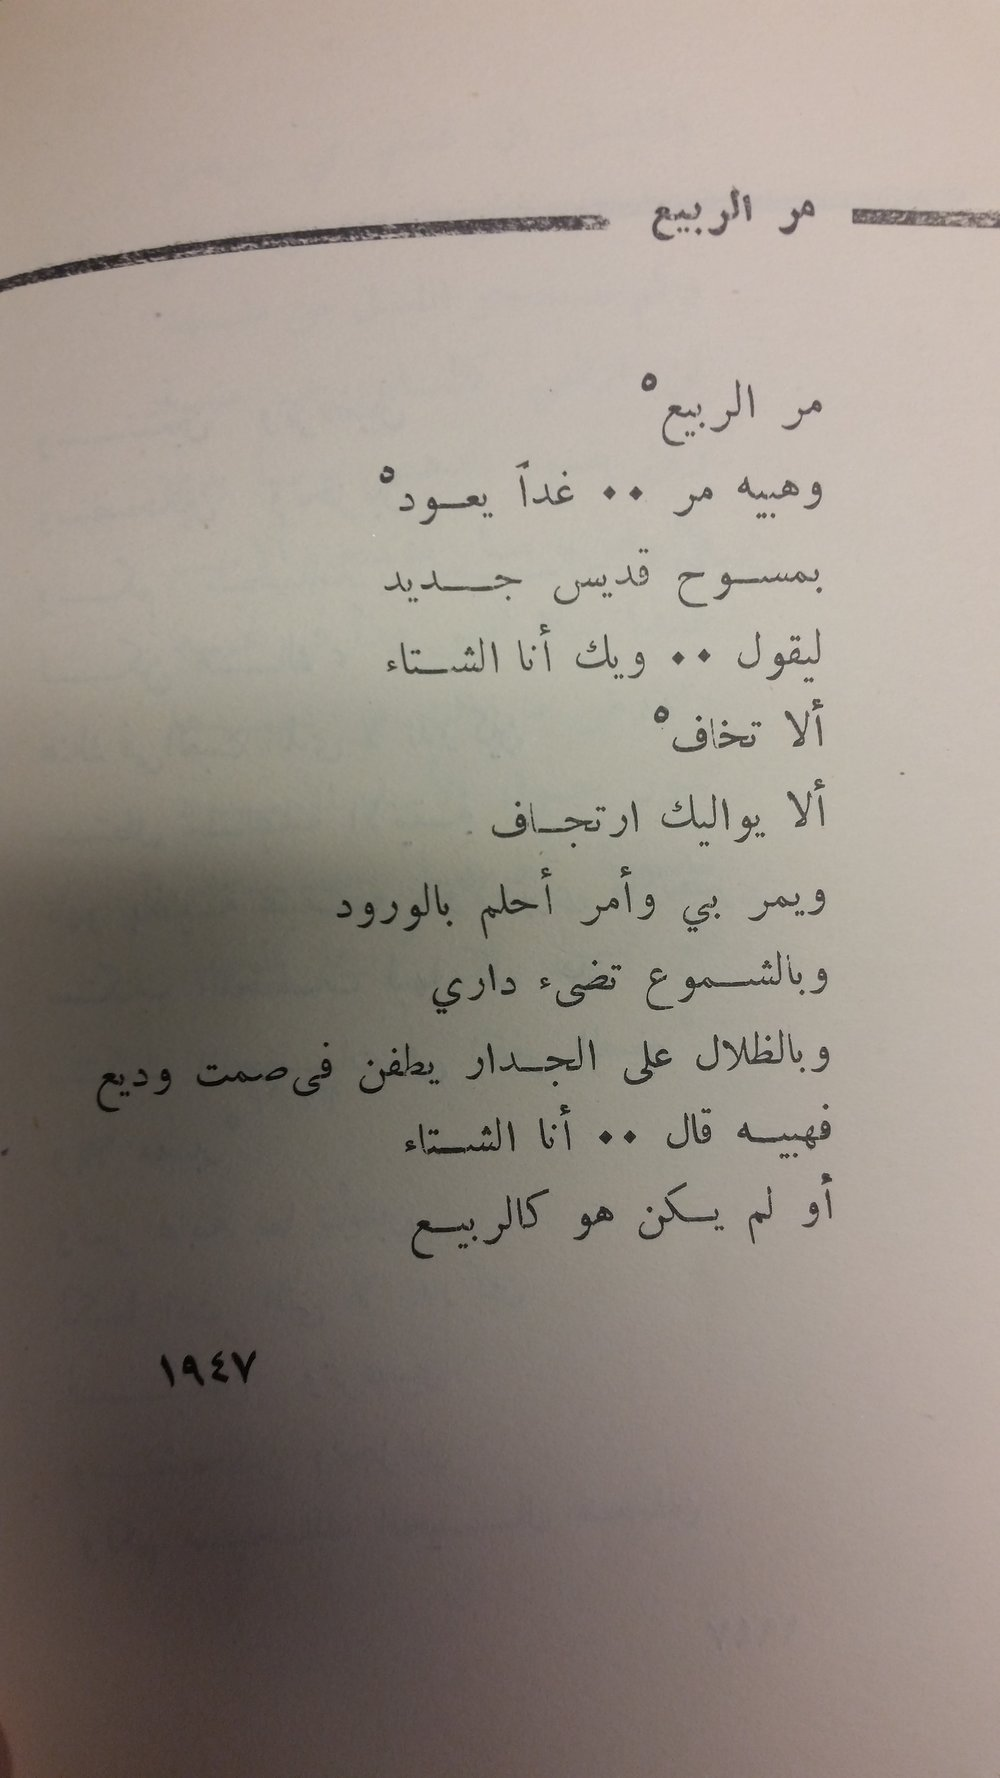 "From  Songs of the Dead City  by Buland al-Ḥaydarī. A quick translation:  Spring is gone  Its dust, gone... but tomorrow it will return  wearing a monk's new frock  to say, ""Beware, I am Winter  Are you not afraid?  Are you not by trembling swayed?  It passes by me, and I pass by, dreaming of roses,  of my house bathed in candlelight  as shadows roam the wall in tranquil silence.  Its dust said, ""I am Winter...""  And was it not like Spring?"